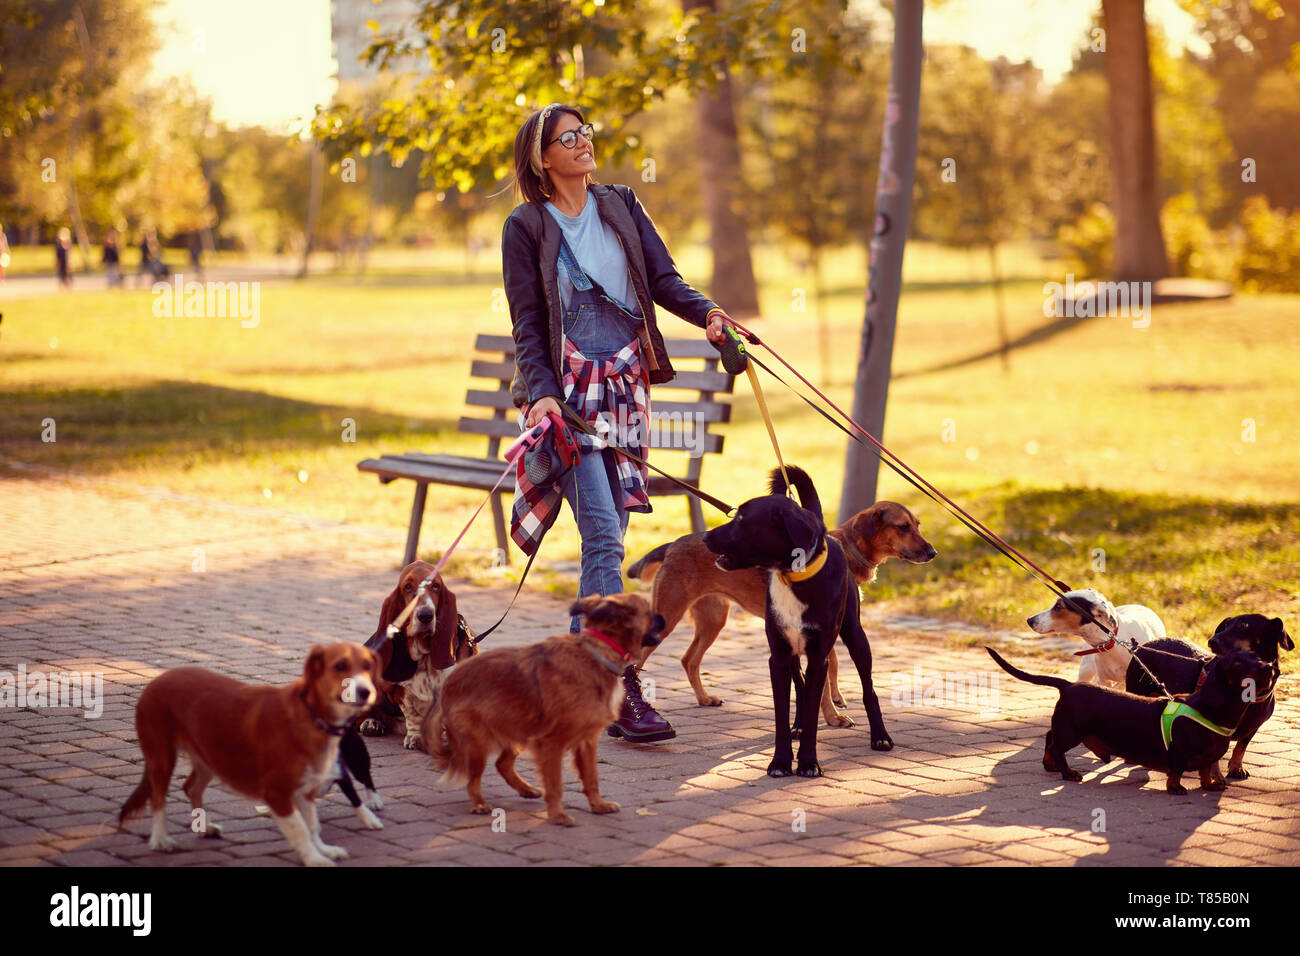 Happy Woman Dog Walker With Dogs Enjoying In Funny Walking Outdoors Stock Photo Alamy